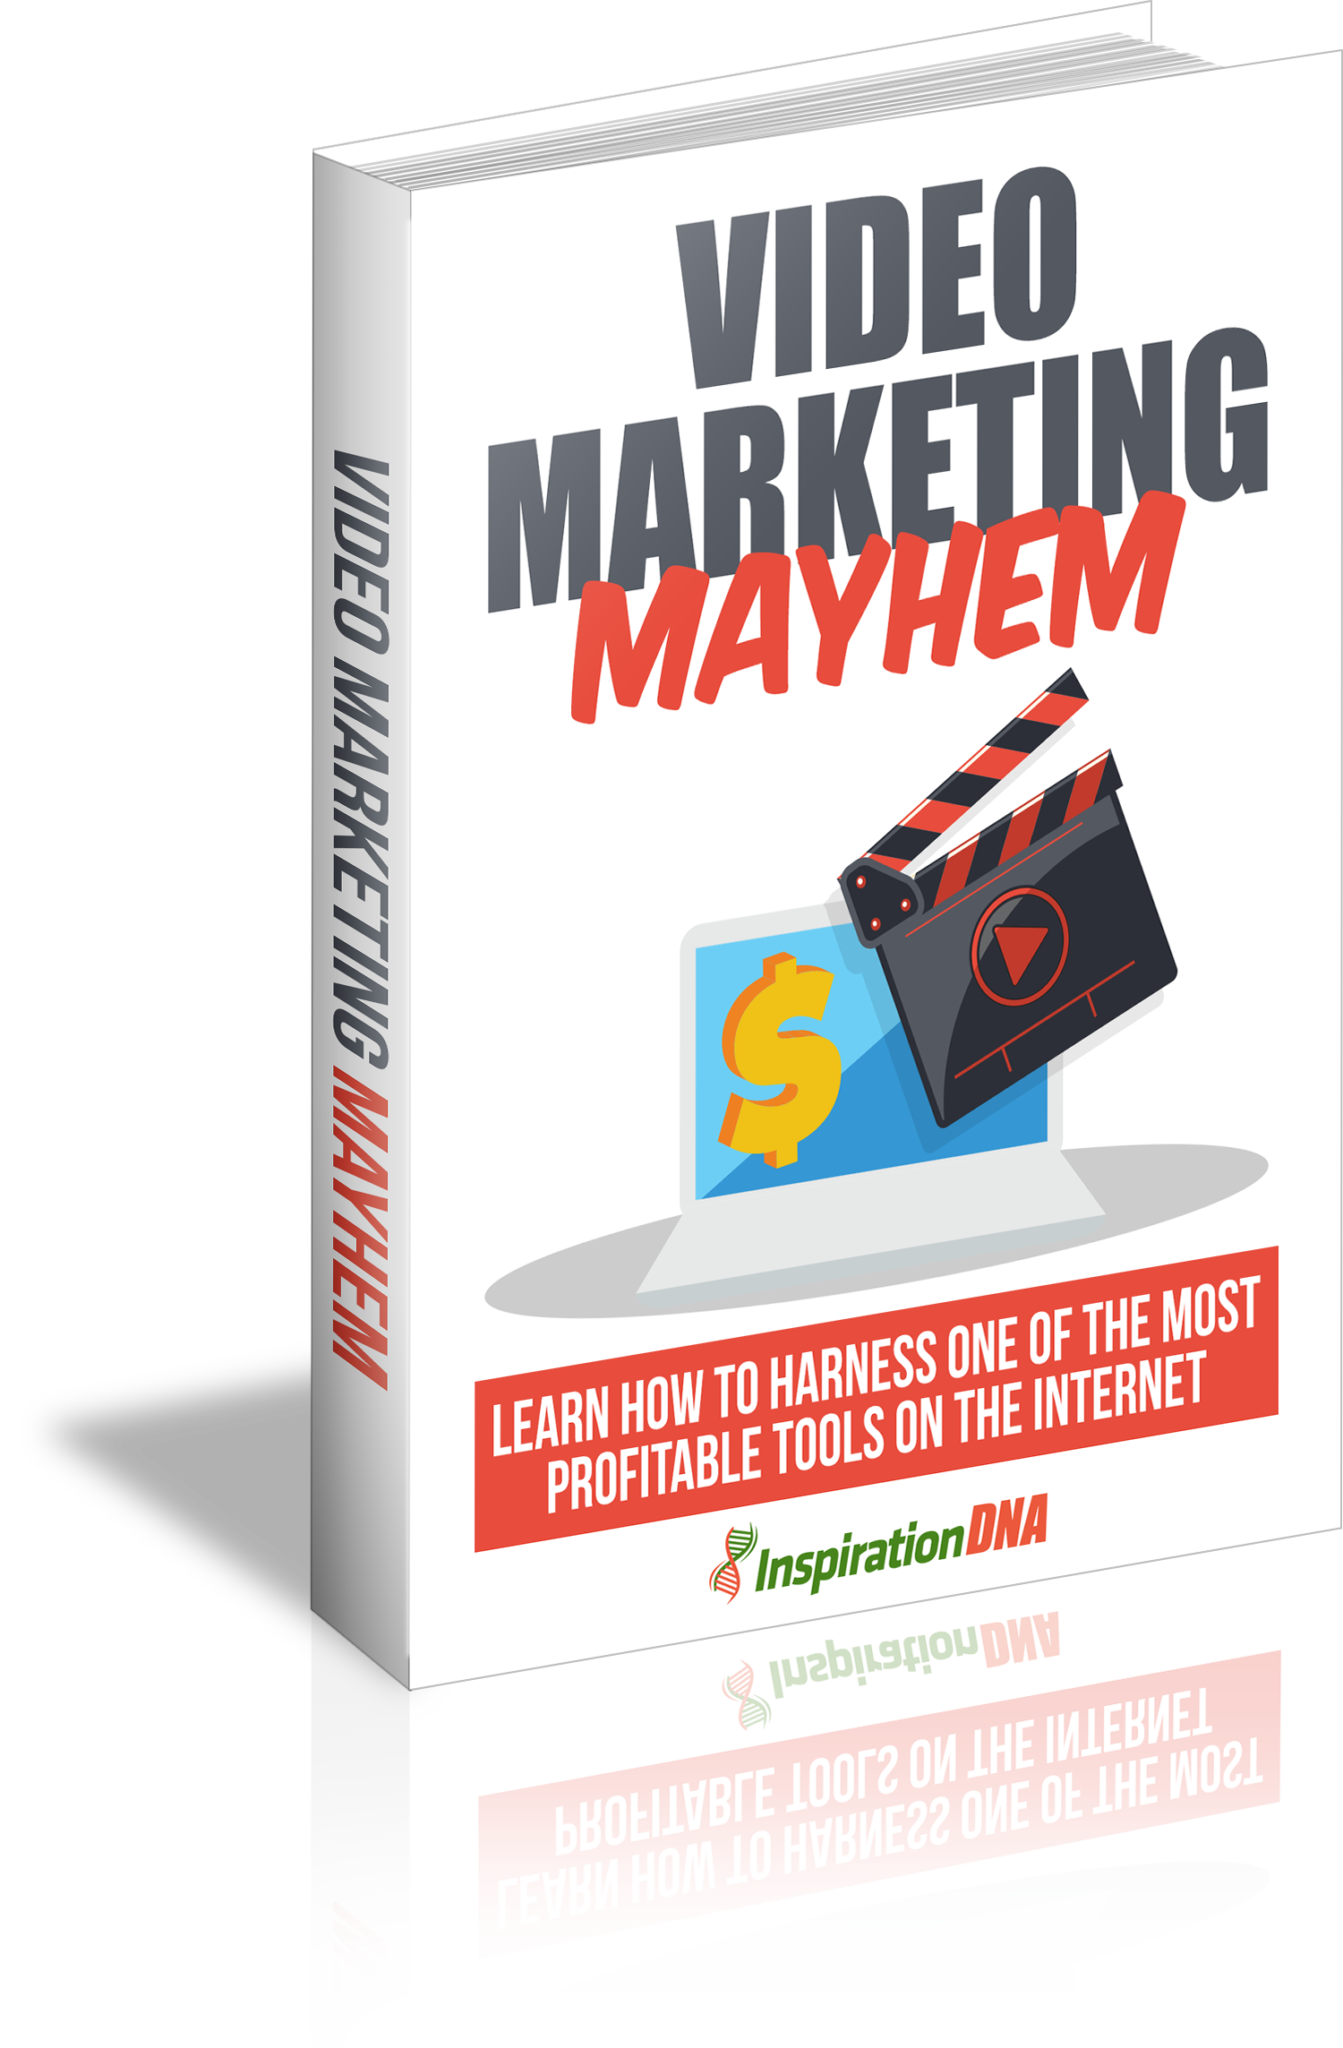 VideoMarketingMayhem mrr Video Marketing Mayhem